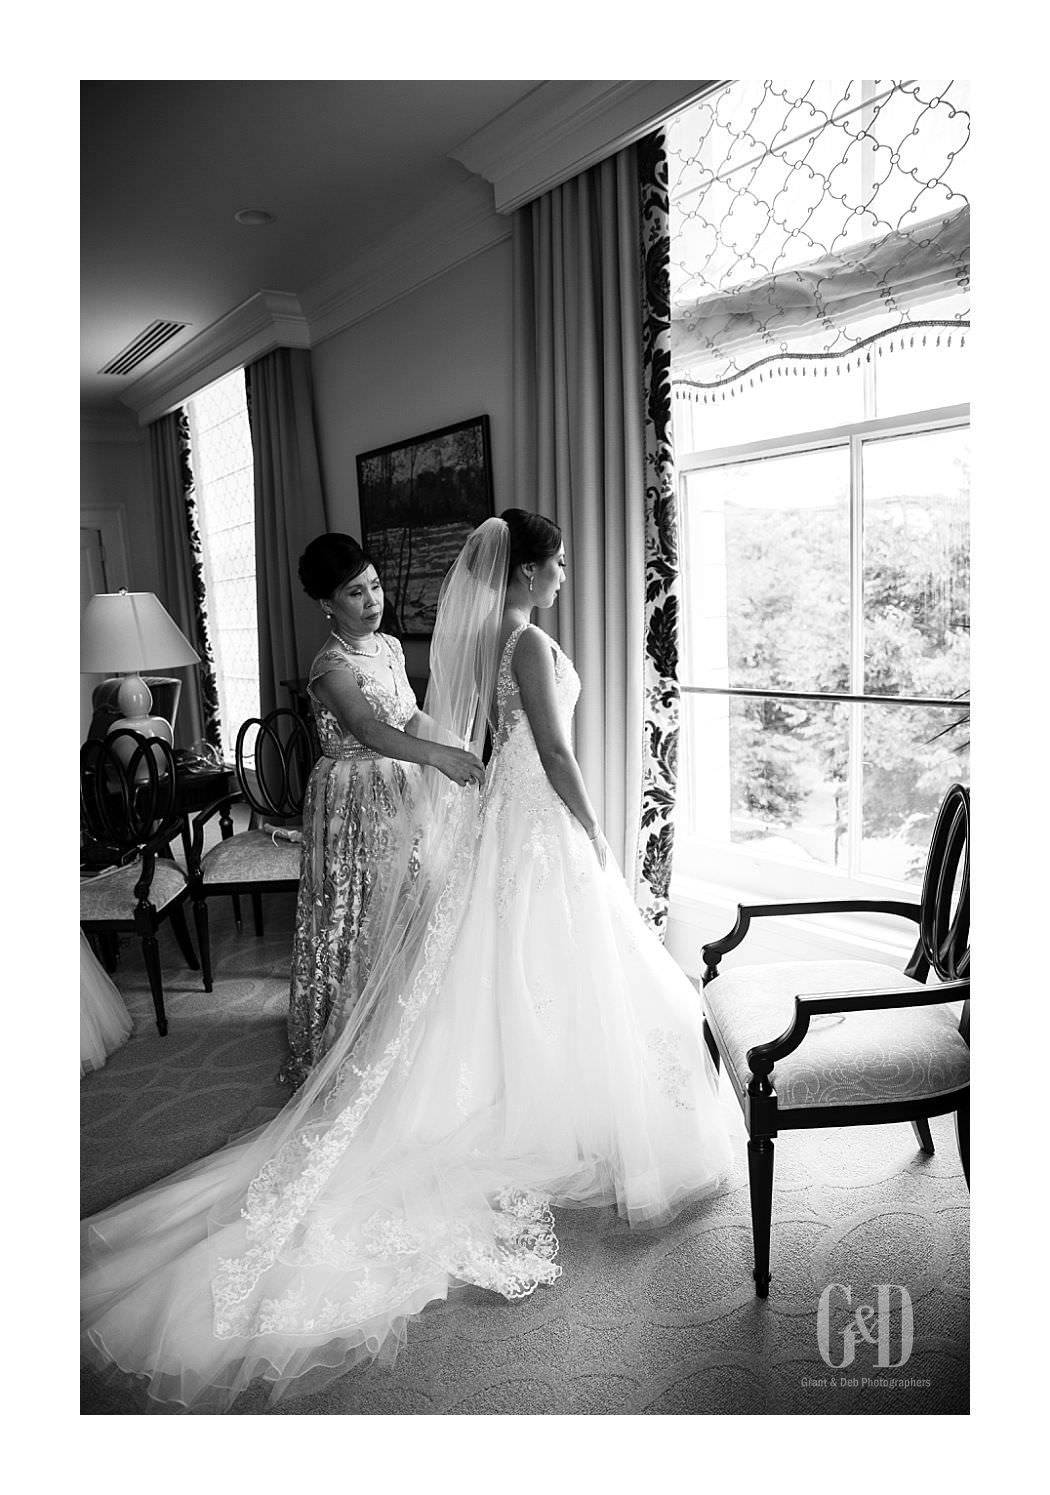 jefferson hotel wedding photographers - jefferson hotel wedding photographers